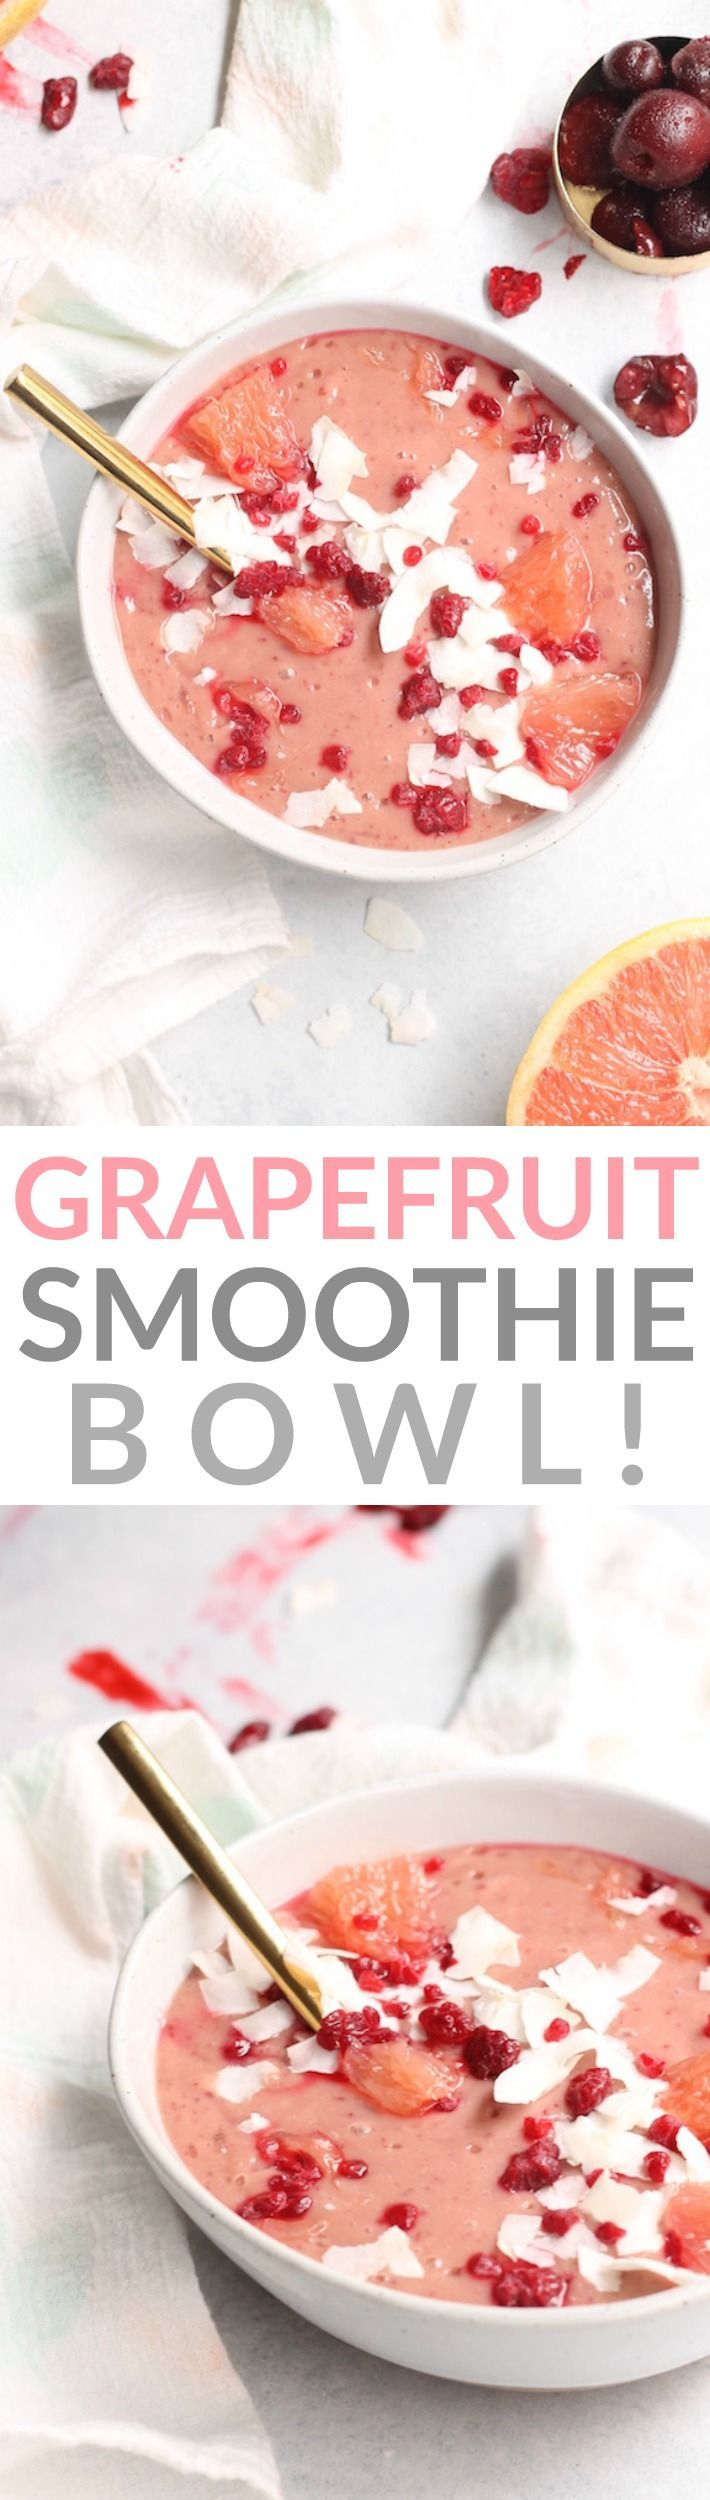 This sweet, refreshing, and creamy Grapefruit Smoothie Bowl makes for the perfect healthy breakfast or cooling treat.